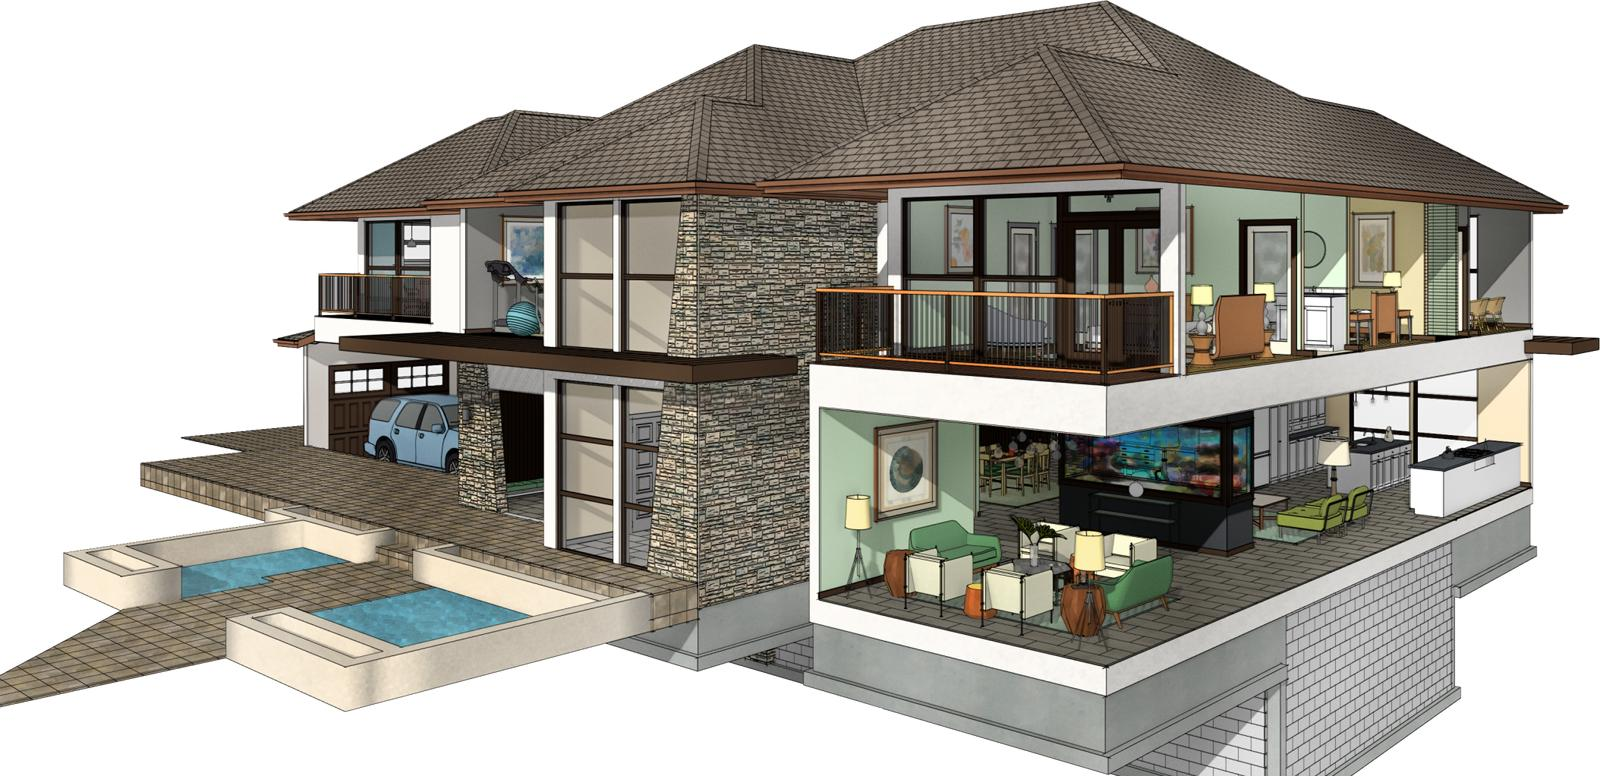 Home Design Software Interior And Exterior